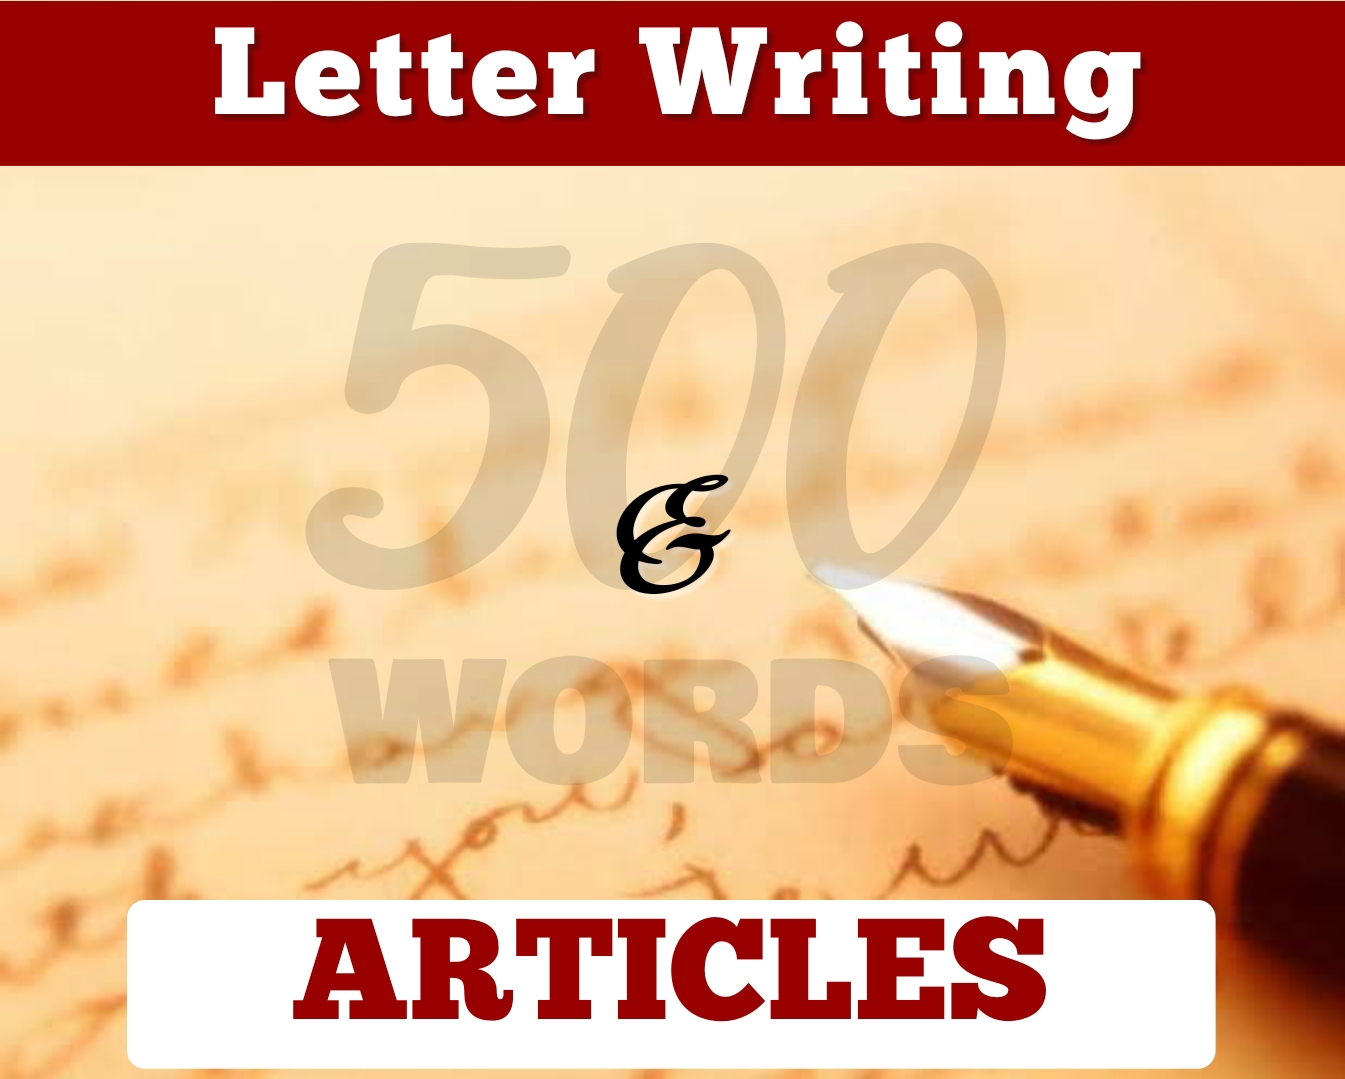 500 words - mind blowing,  articulate,  factual and well composed SEO articles